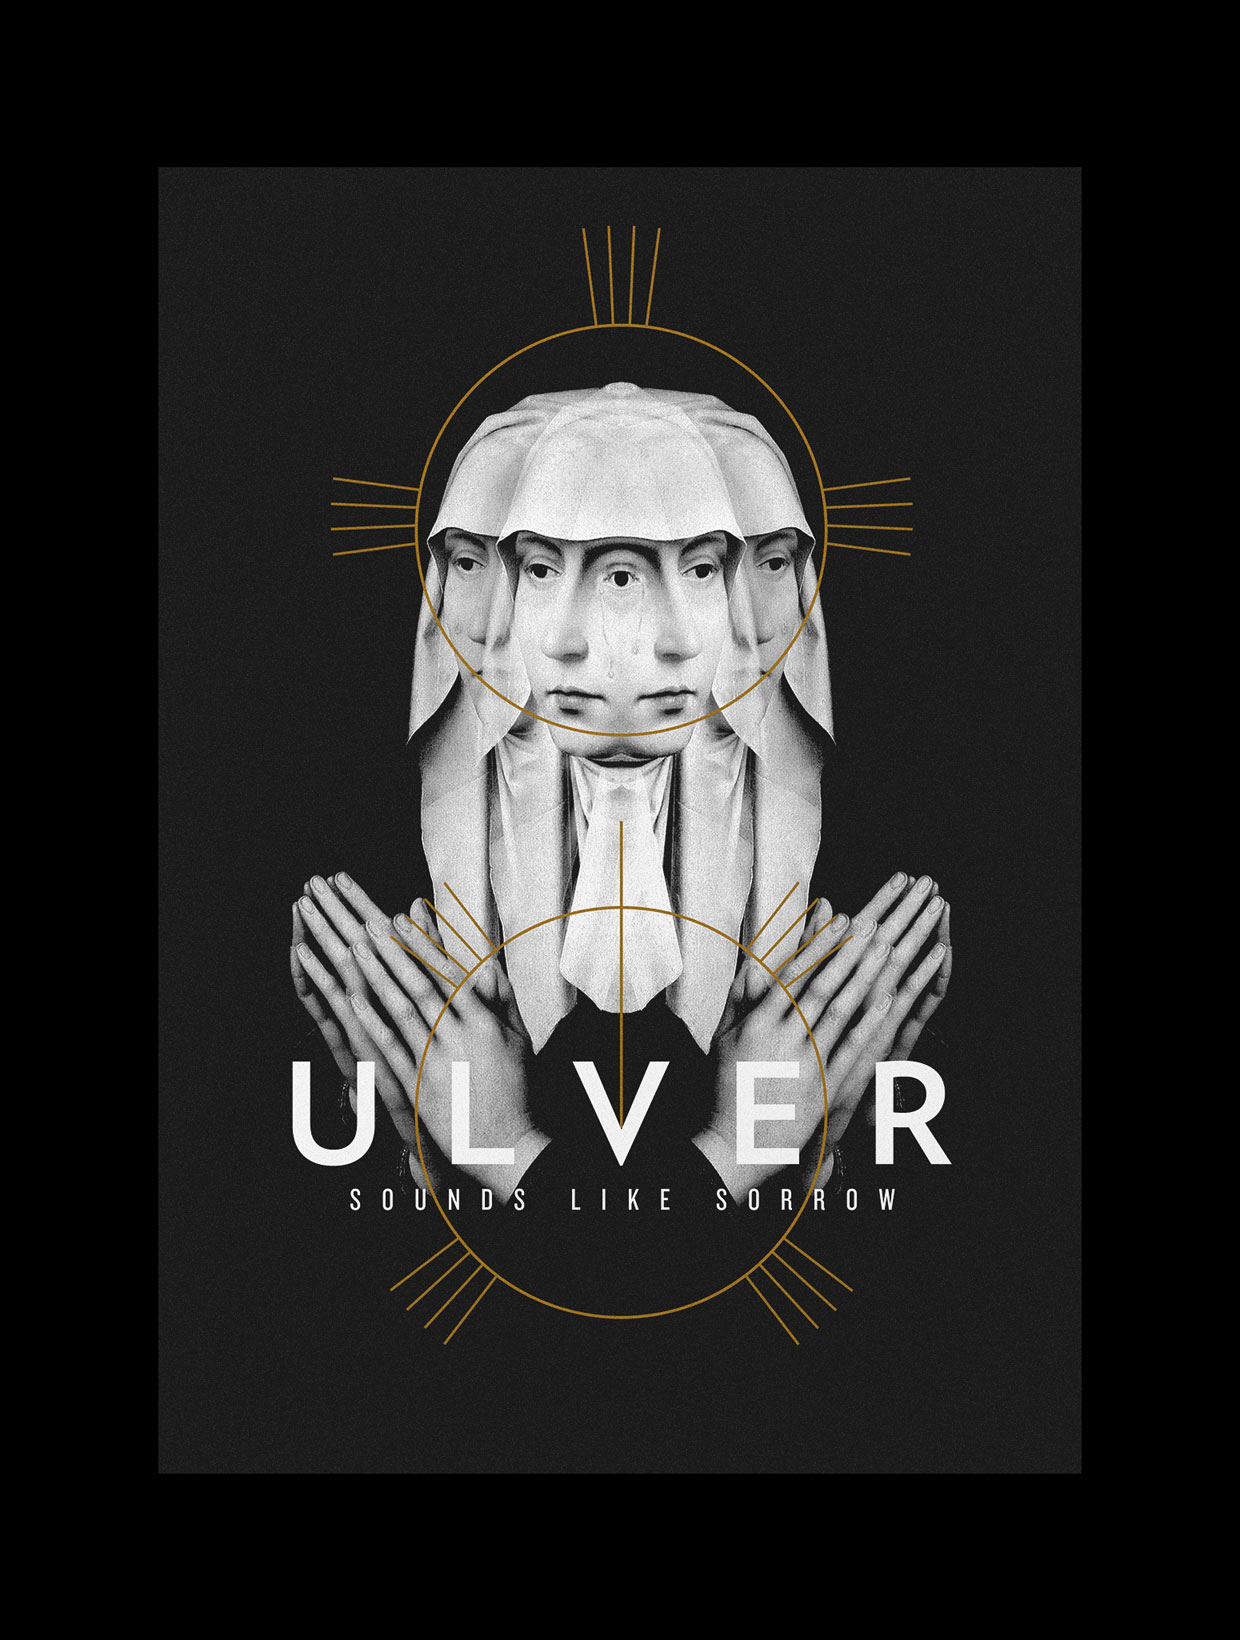 Ulver - Sounds Like Sorrow